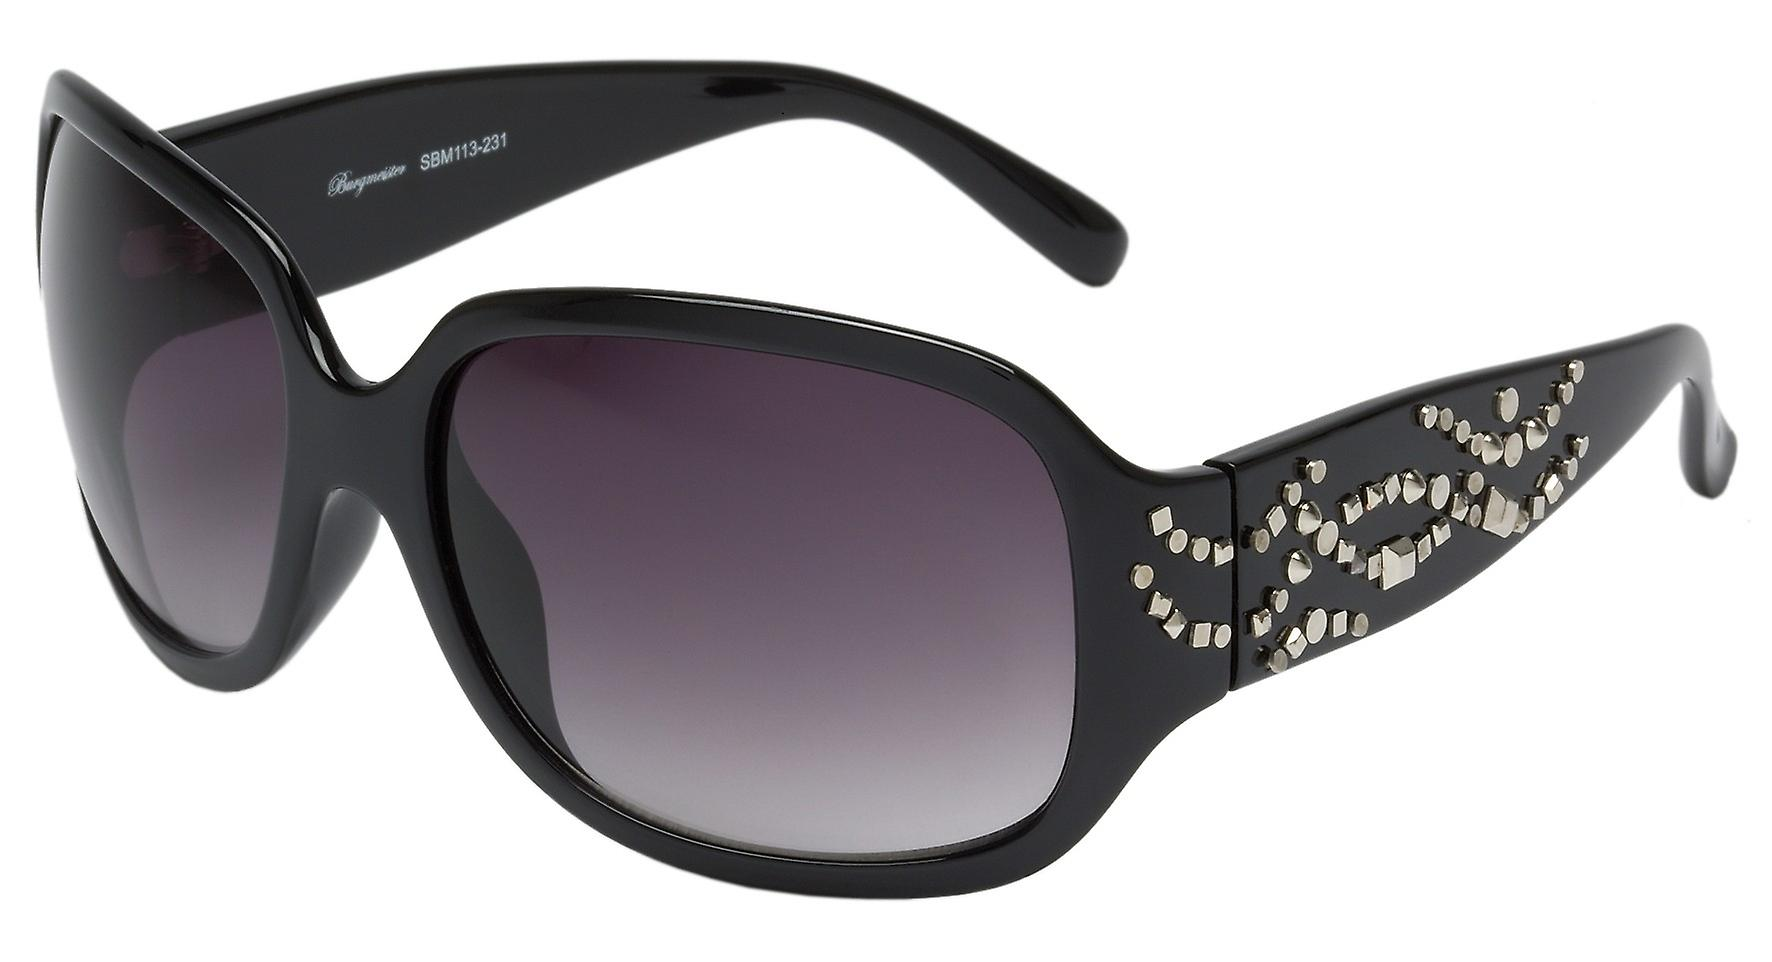 Burgmeister Ladies sunglasses Las Vegas, SBM113-231